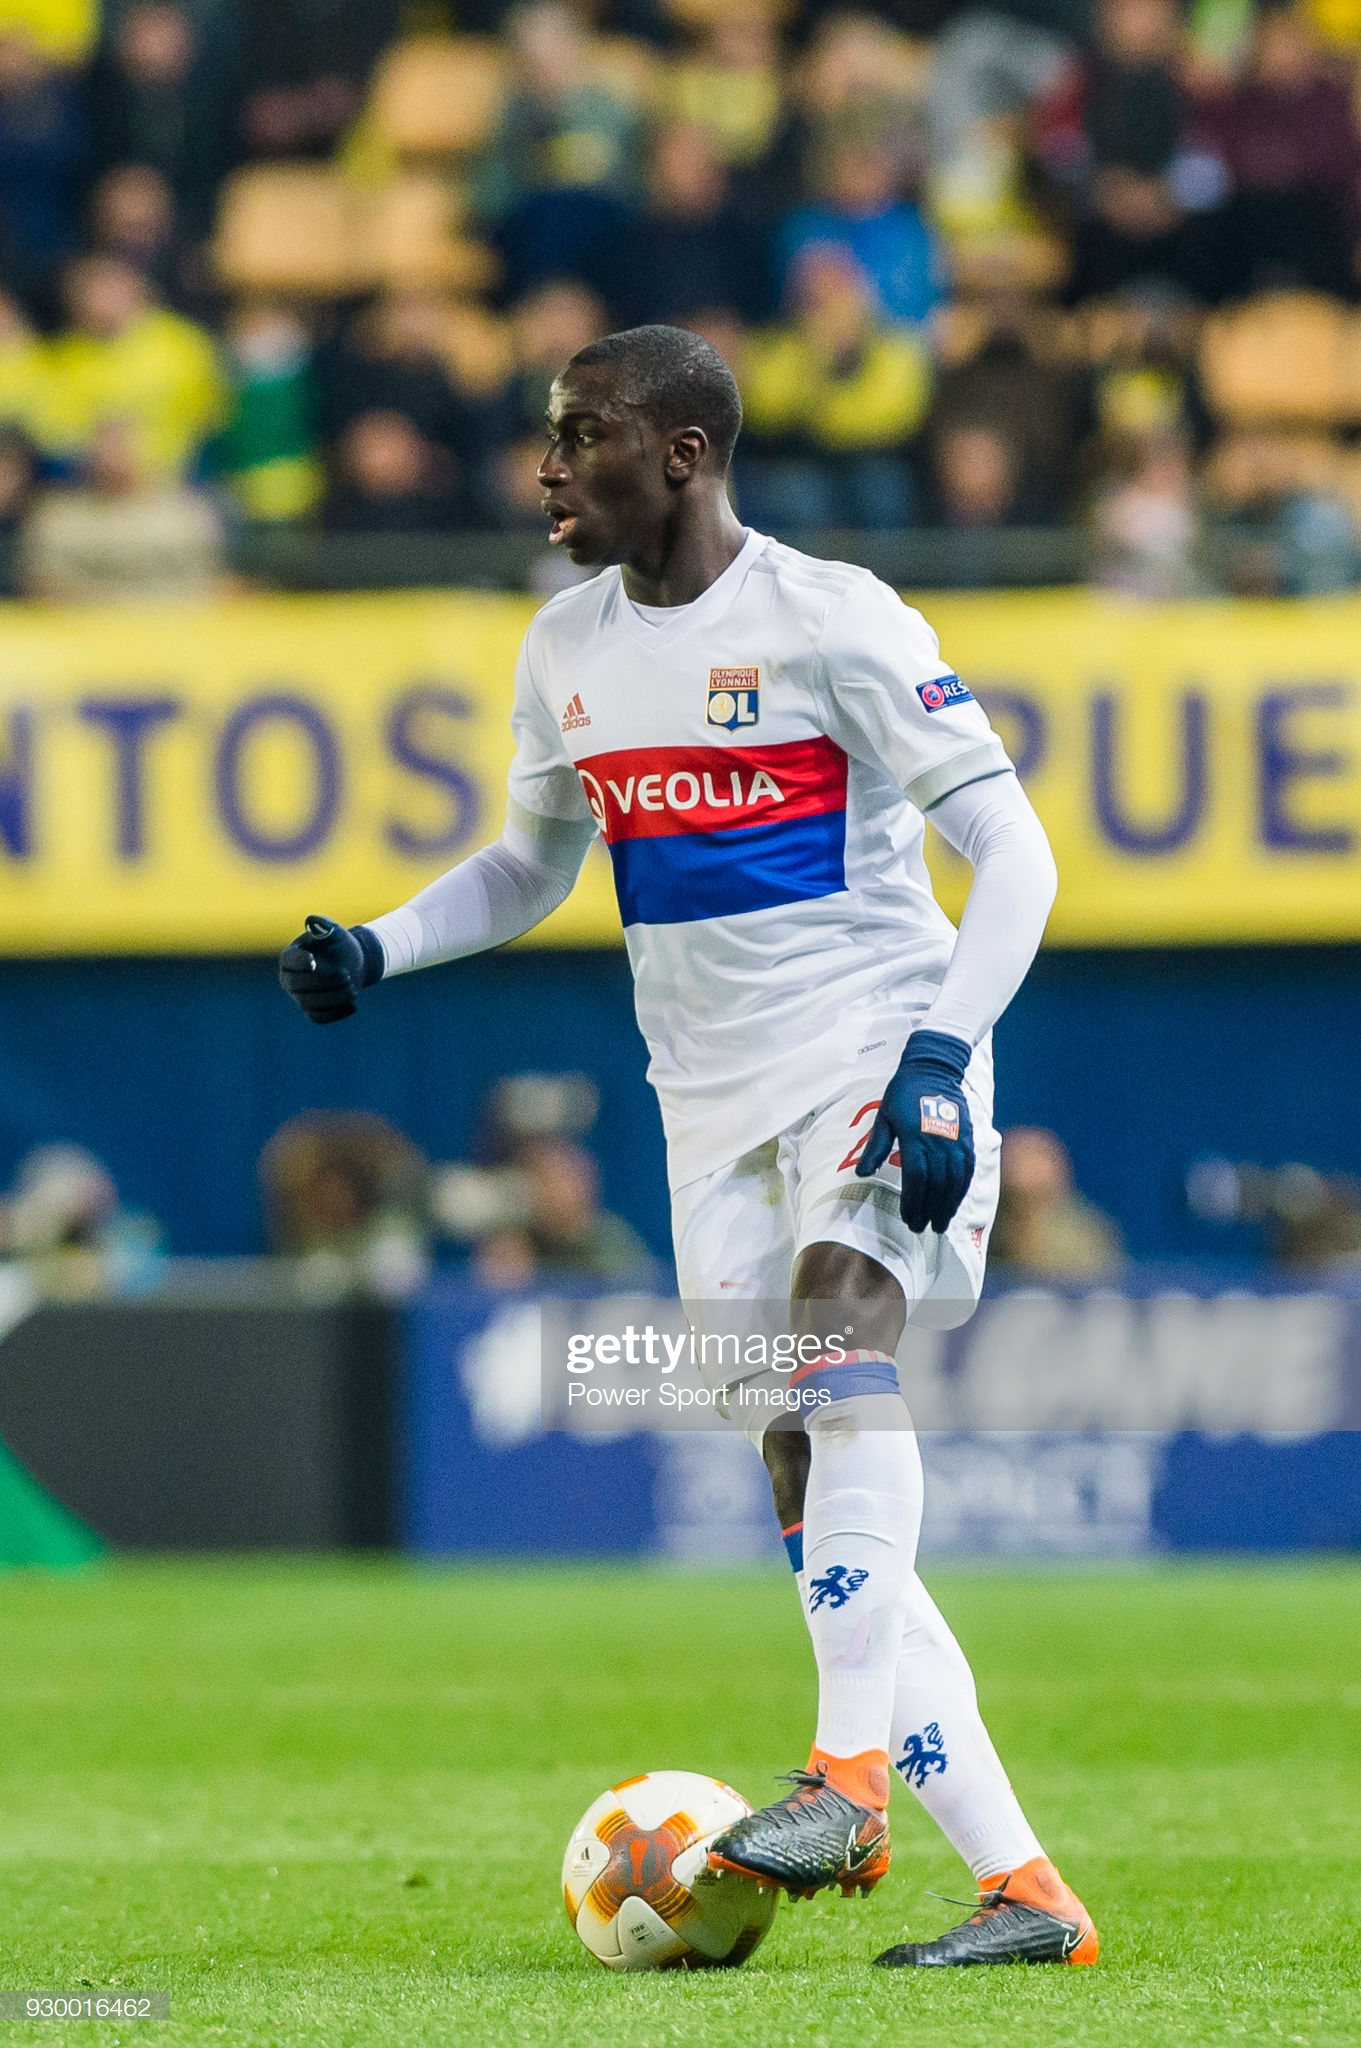 News Photo Ferland Mendy Of Olympique Lyon In Action During Sports Images Lyon Villarreal Cf